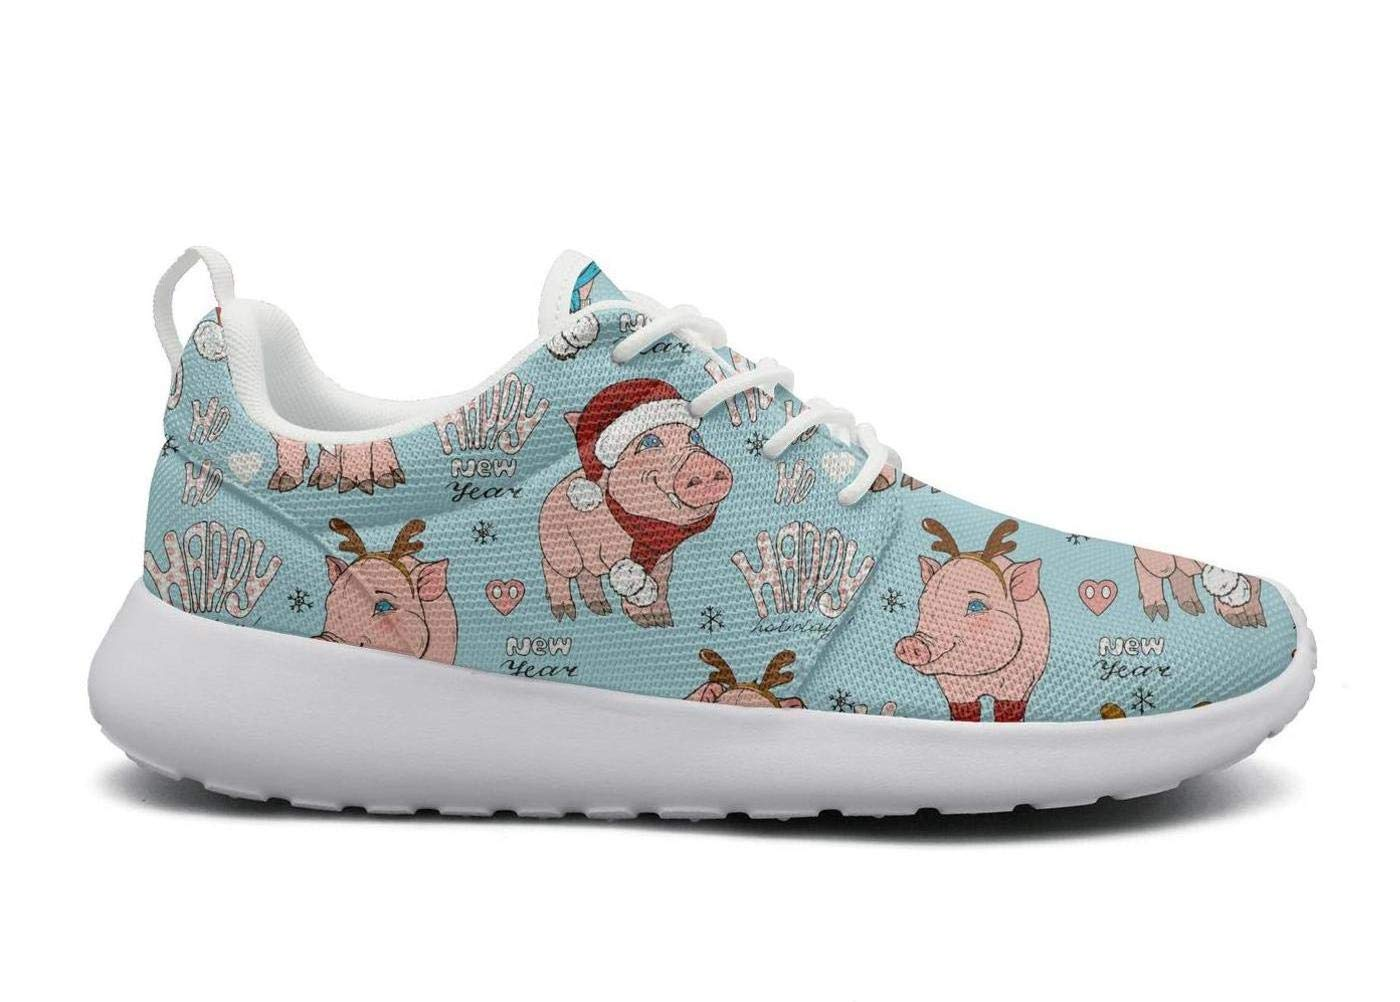 ipdterty Wear-Resistant Traveling Sneaker Fat Happy Moose Pigs Celebrate New Year Mans Novelty Running Shoes